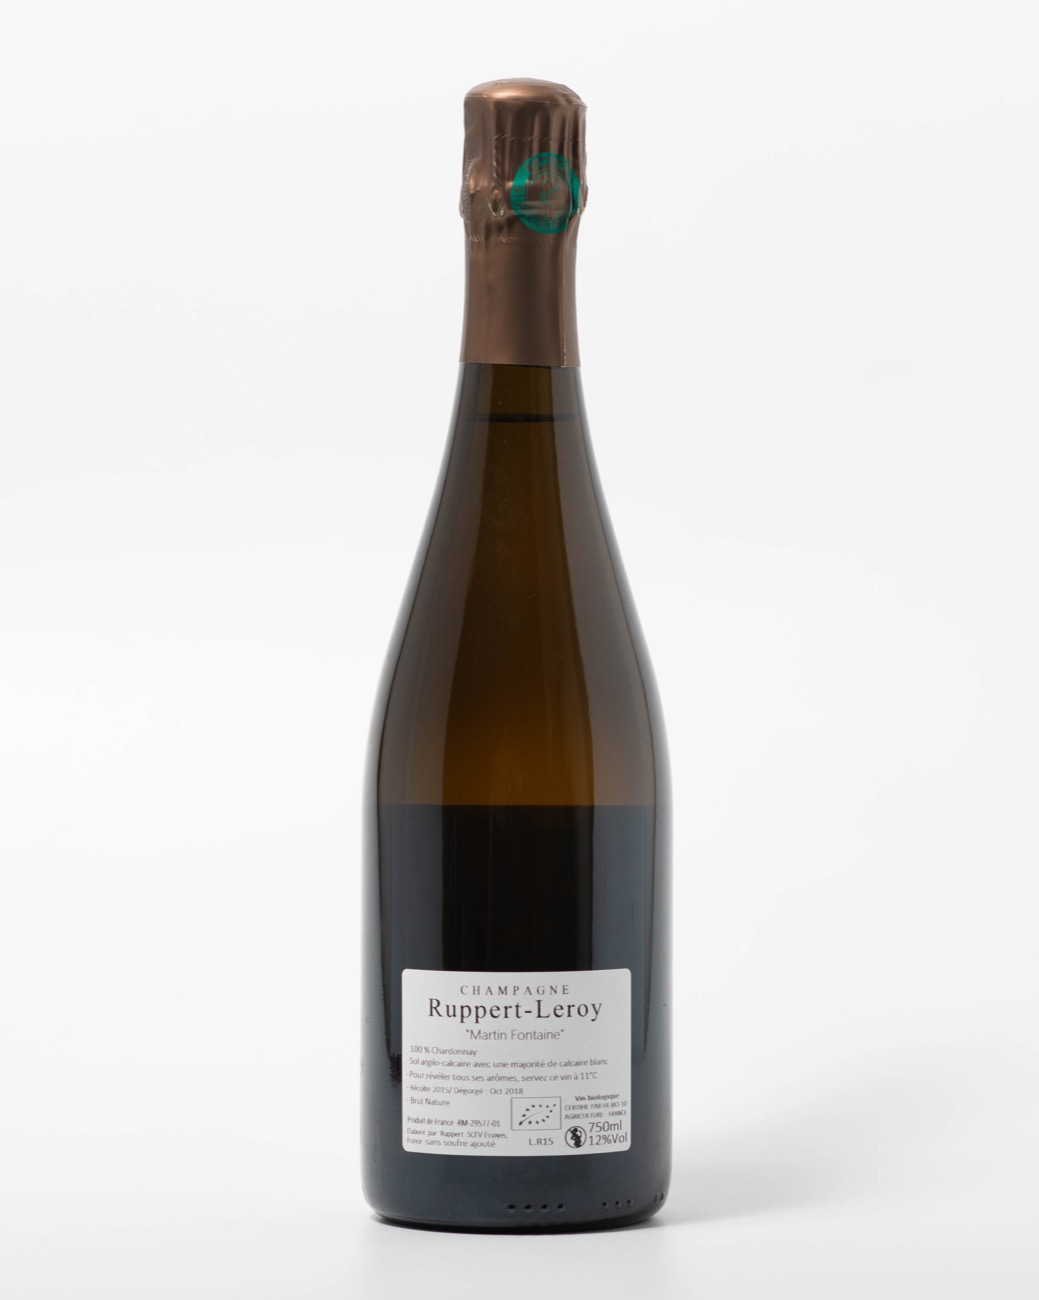 Ruppert Leroy AOP Champagne Martin Fontaine 2